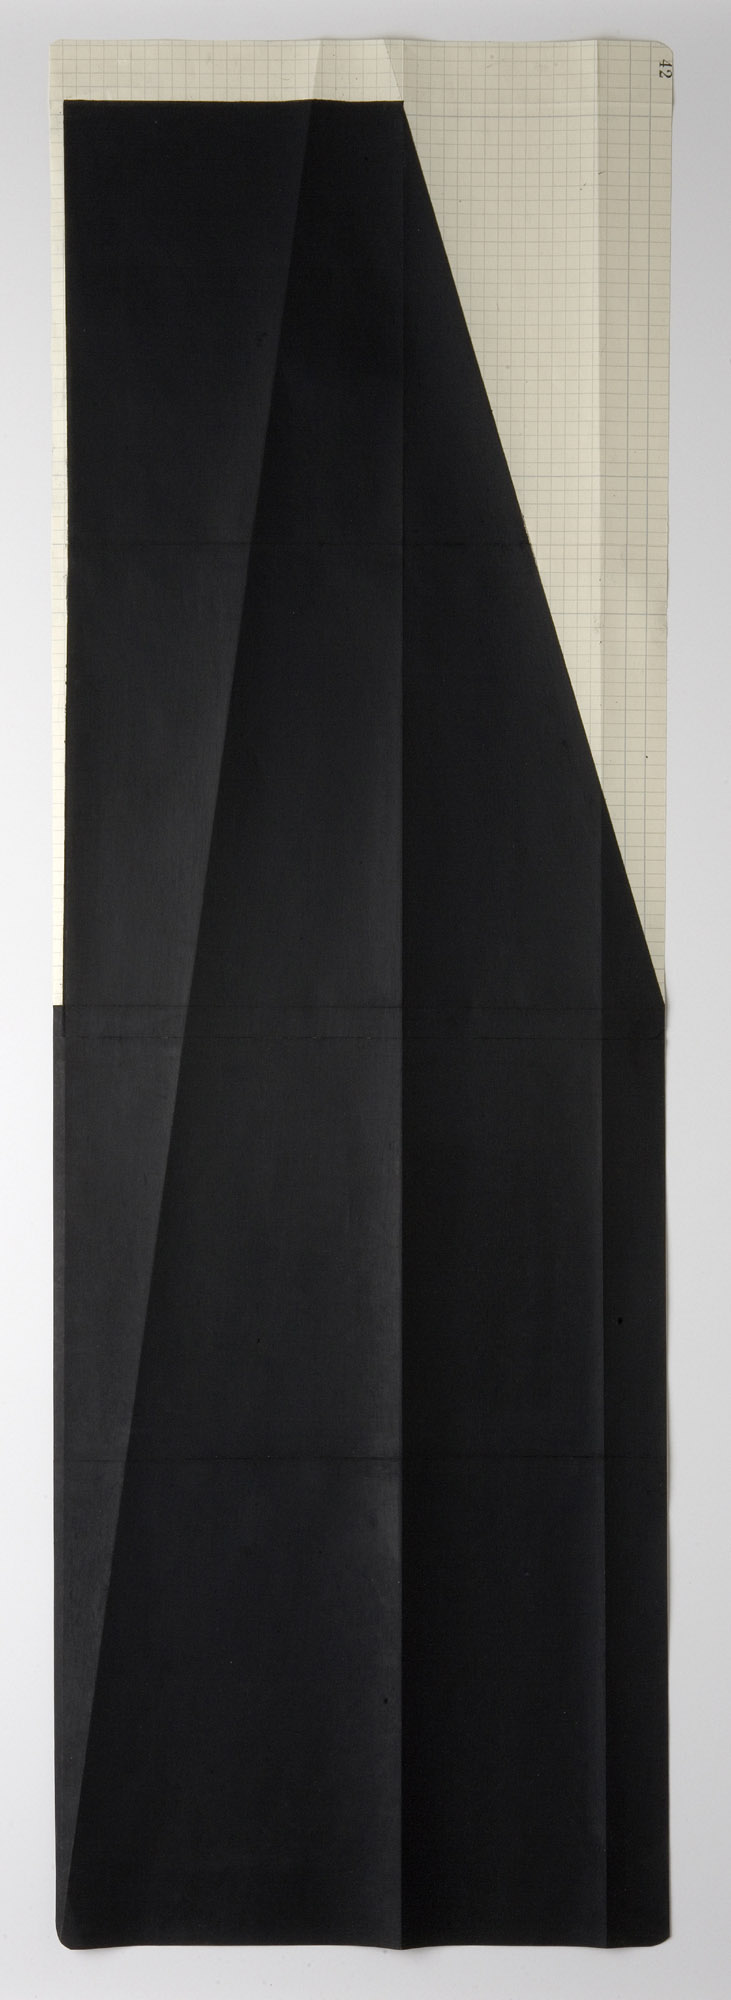 Manfred Muller, UMS Expanded #3550, , oil pastel on folded grid paper, Object: 34 x 12 in.